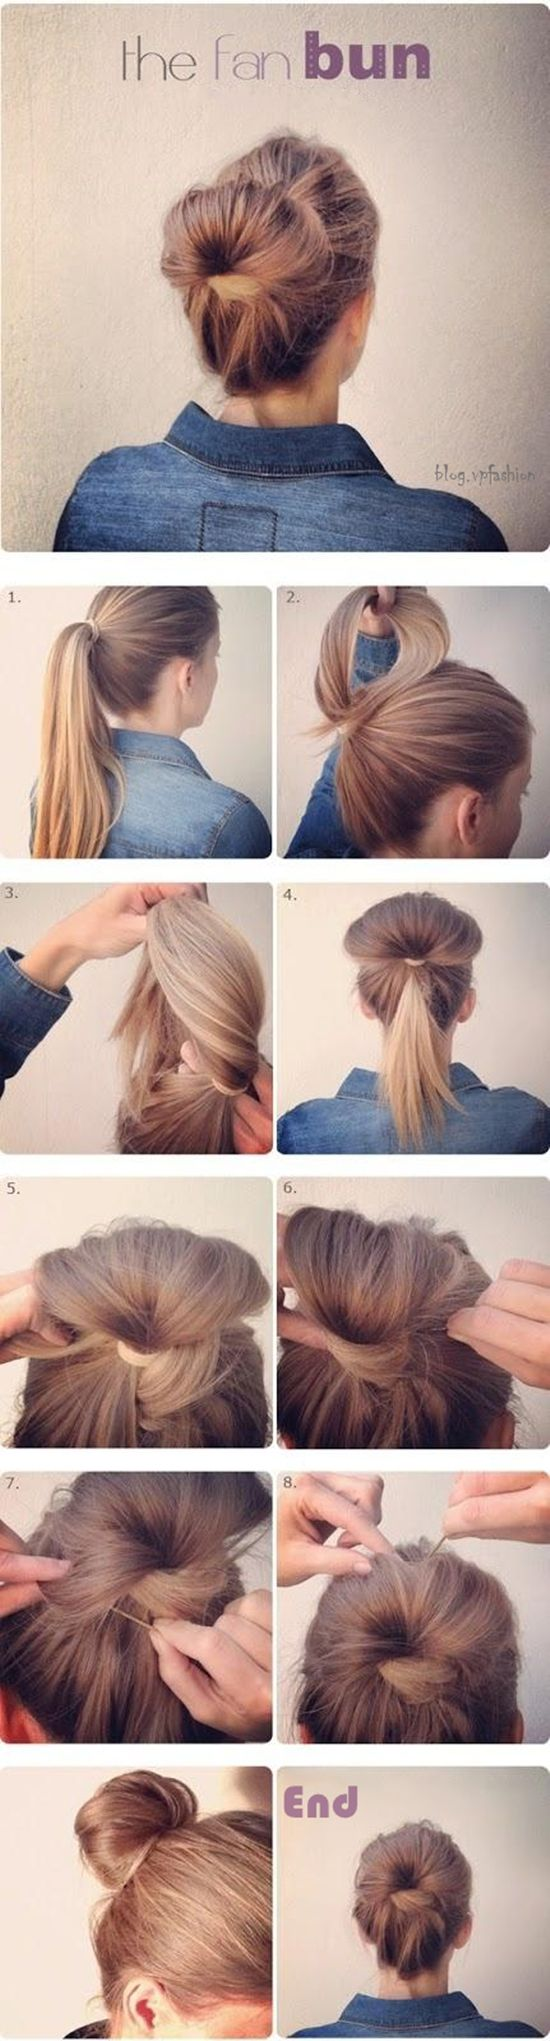 cute hair bun turorial by clip in human hair extensions